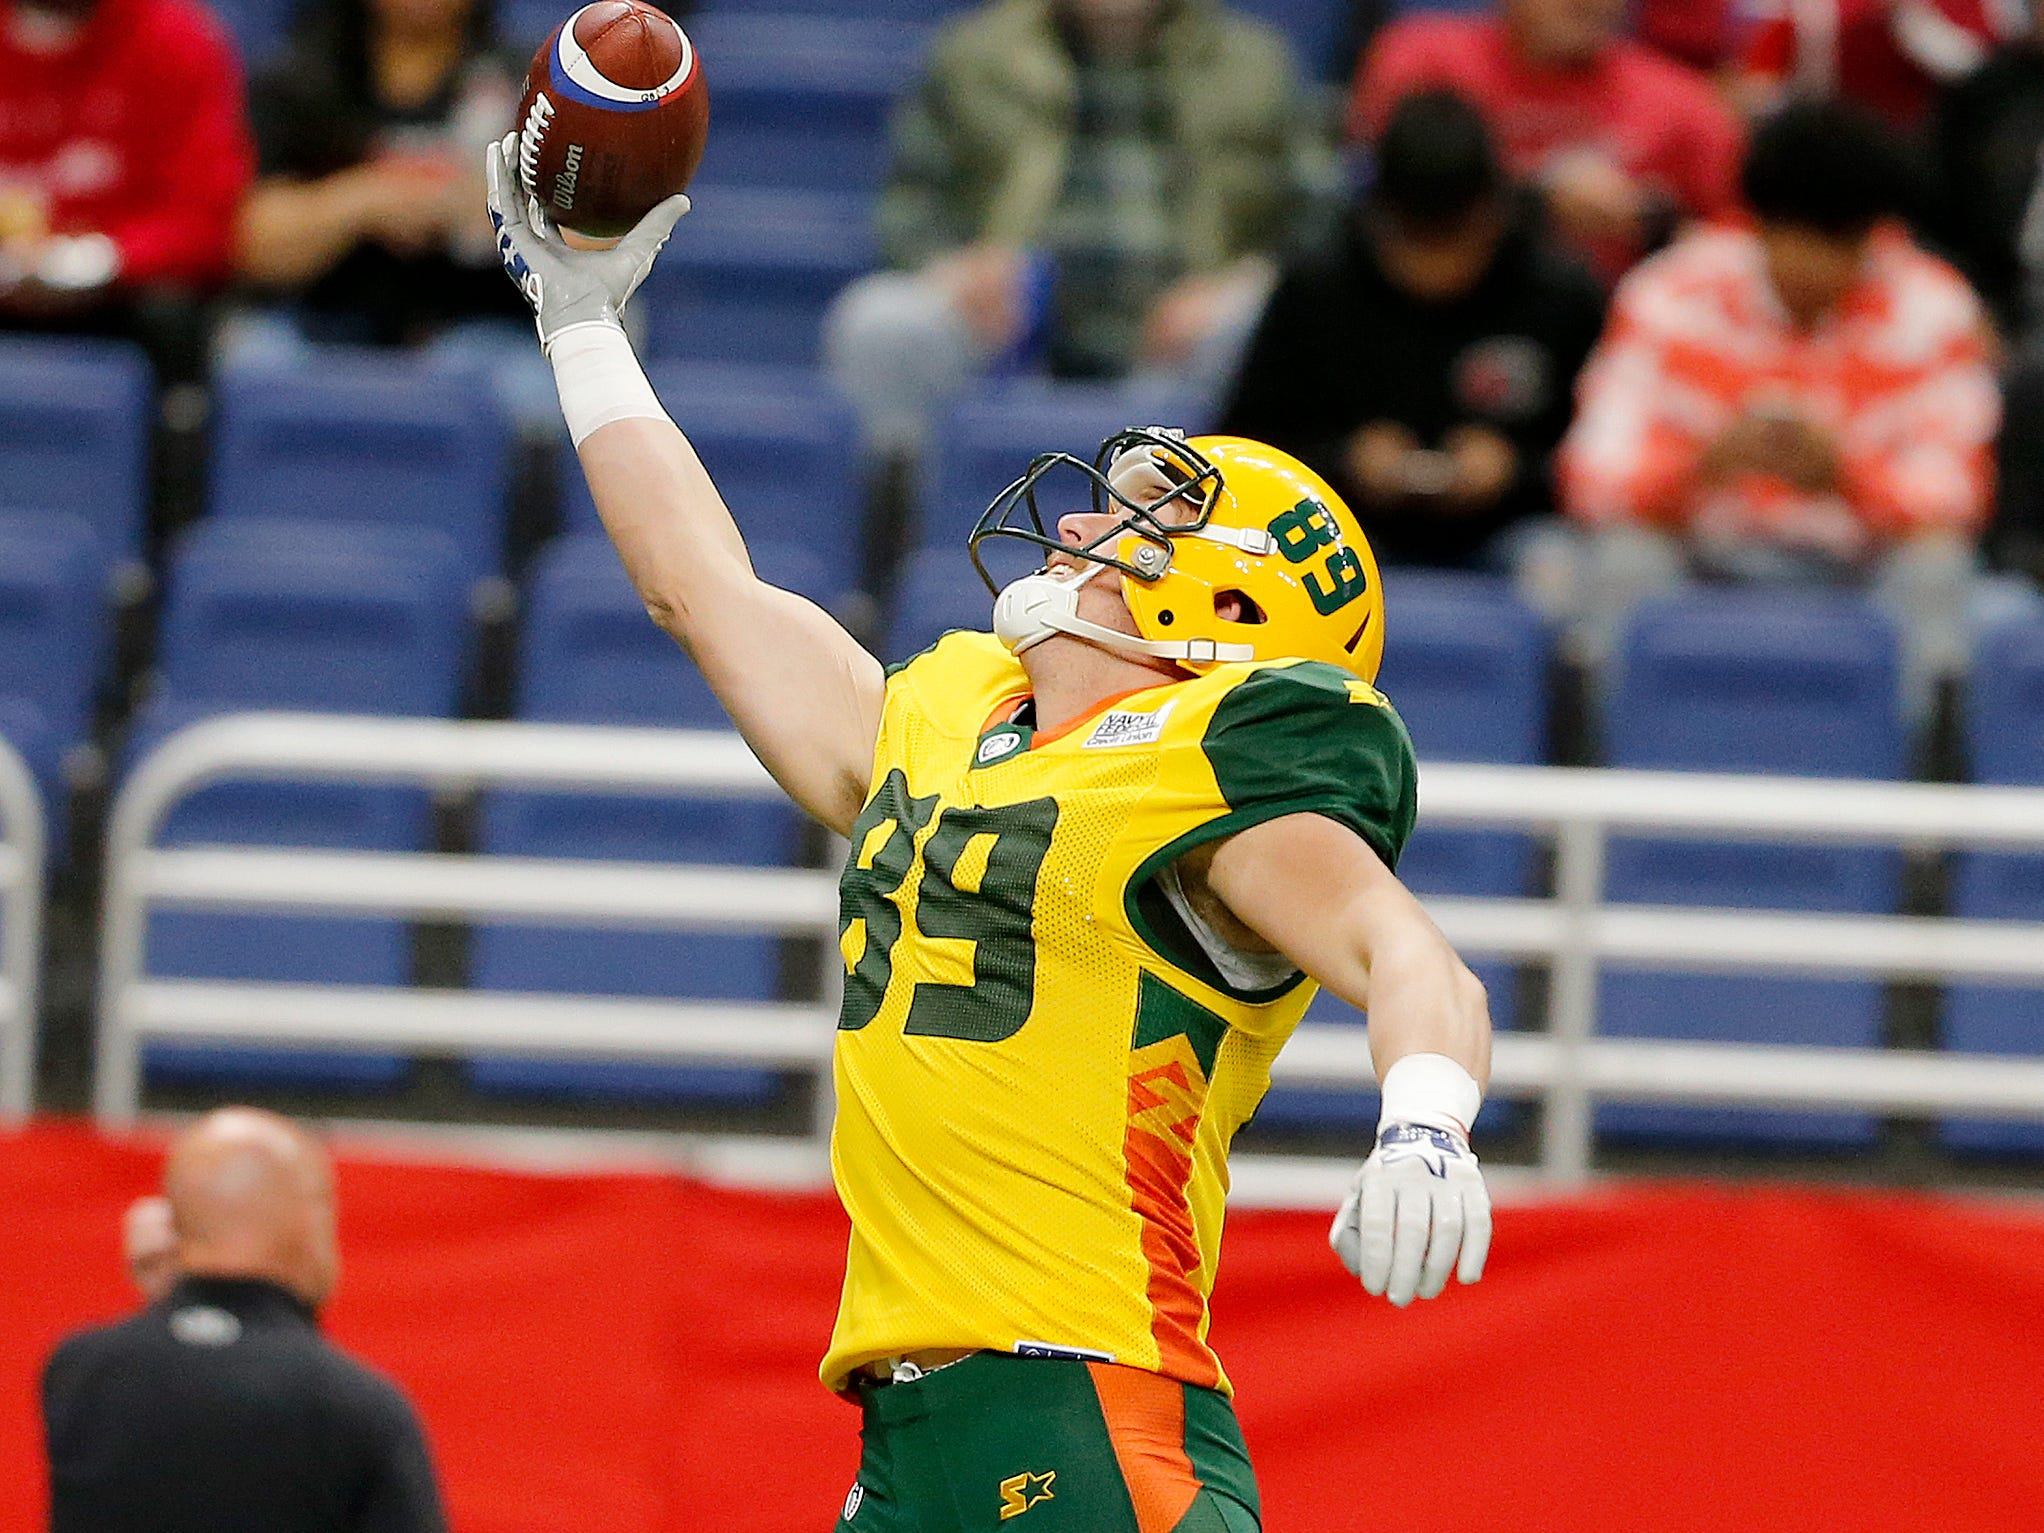 Arizona Hot Shots tight end Connor Hamlett (89) reaches for the ball during warmups before the Arizona Hotshots at San Antonio Commanders AAF football game, Sunday, March 31, 2019, at the Alamodome in San Antonio.